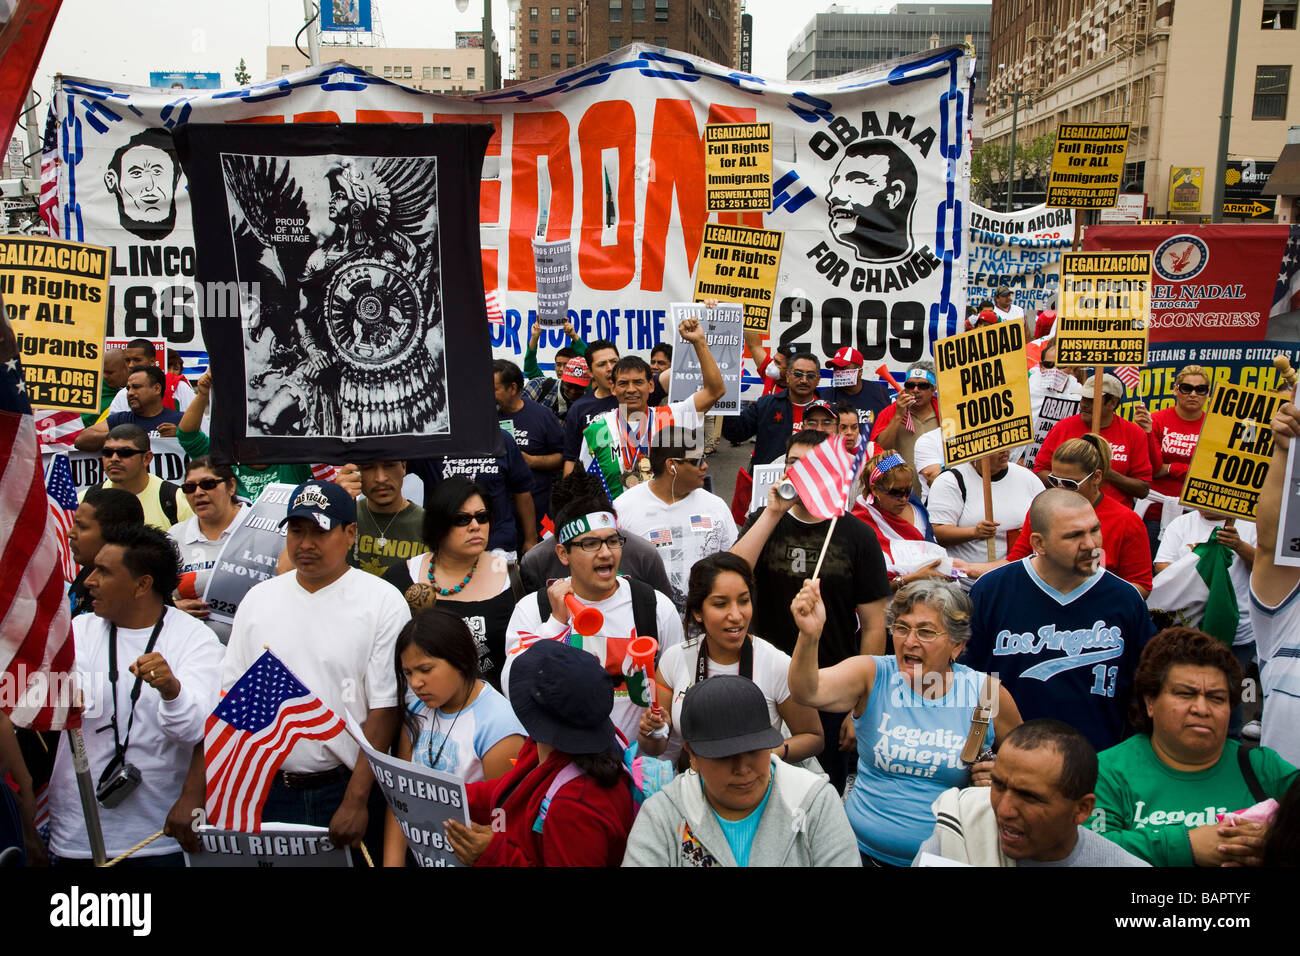 May Day Protest May 1 2009 at Olympic Blvd and Broadway Los Angeles California United States of America - Stock Image